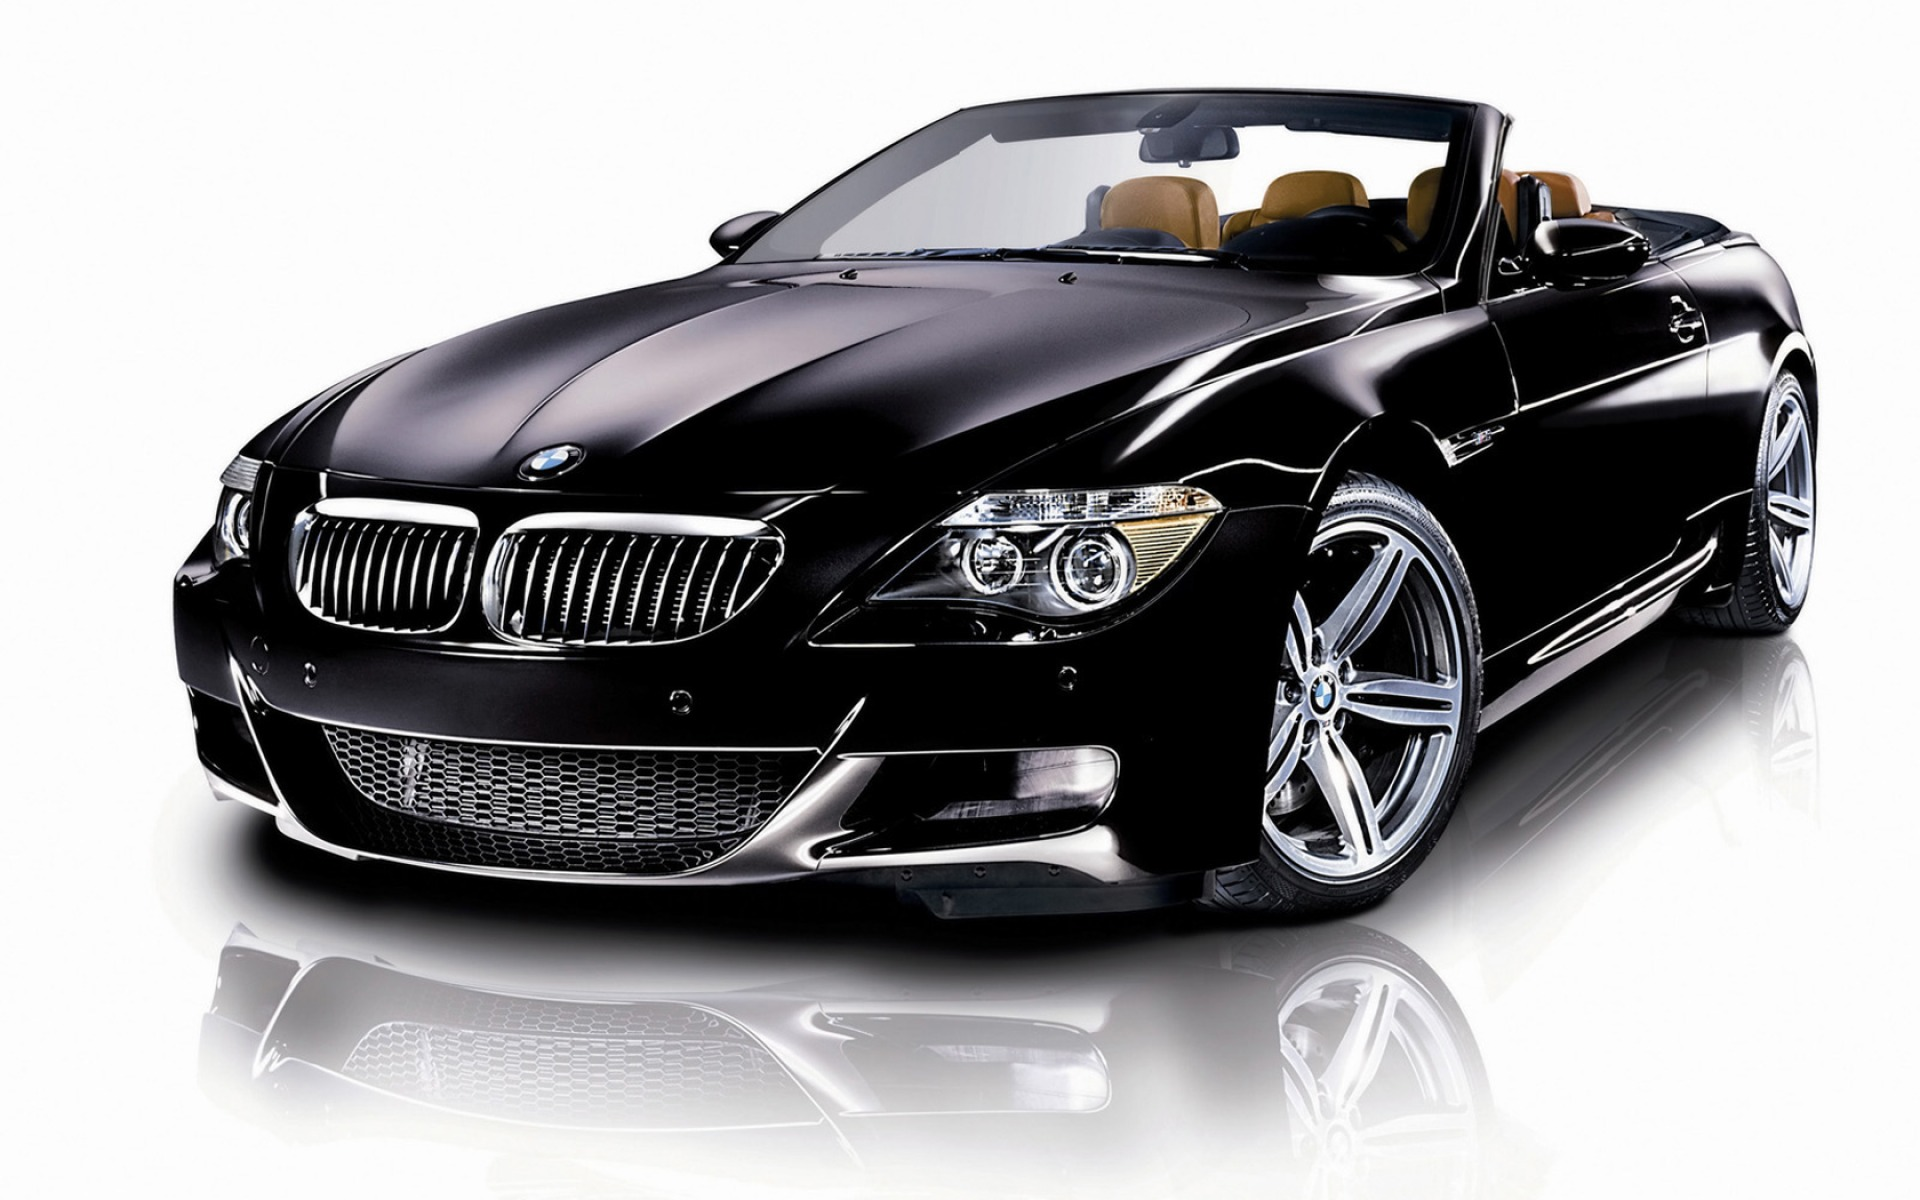 Ultrablogus  Outstanding Bmw Car Wallpaper Wallpapers For Free Download About   With Marvelous Bmw M Convertible Wallpaper Bmw Cars With Astounding  Gto Interior Also Lexus Gs Interior In Addition Tahoe Interior And Jeep Cj Interior As Well As Ford Mustang  Interior Additionally  Barracuda Interior From Allfreedownloadcom With Ultrablogus  Marvelous Bmw Car Wallpaper Wallpapers For Free Download About   With Astounding Bmw M Convertible Wallpaper Bmw Cars And Outstanding  Gto Interior Also Lexus Gs Interior In Addition Tahoe Interior From Allfreedownloadcom